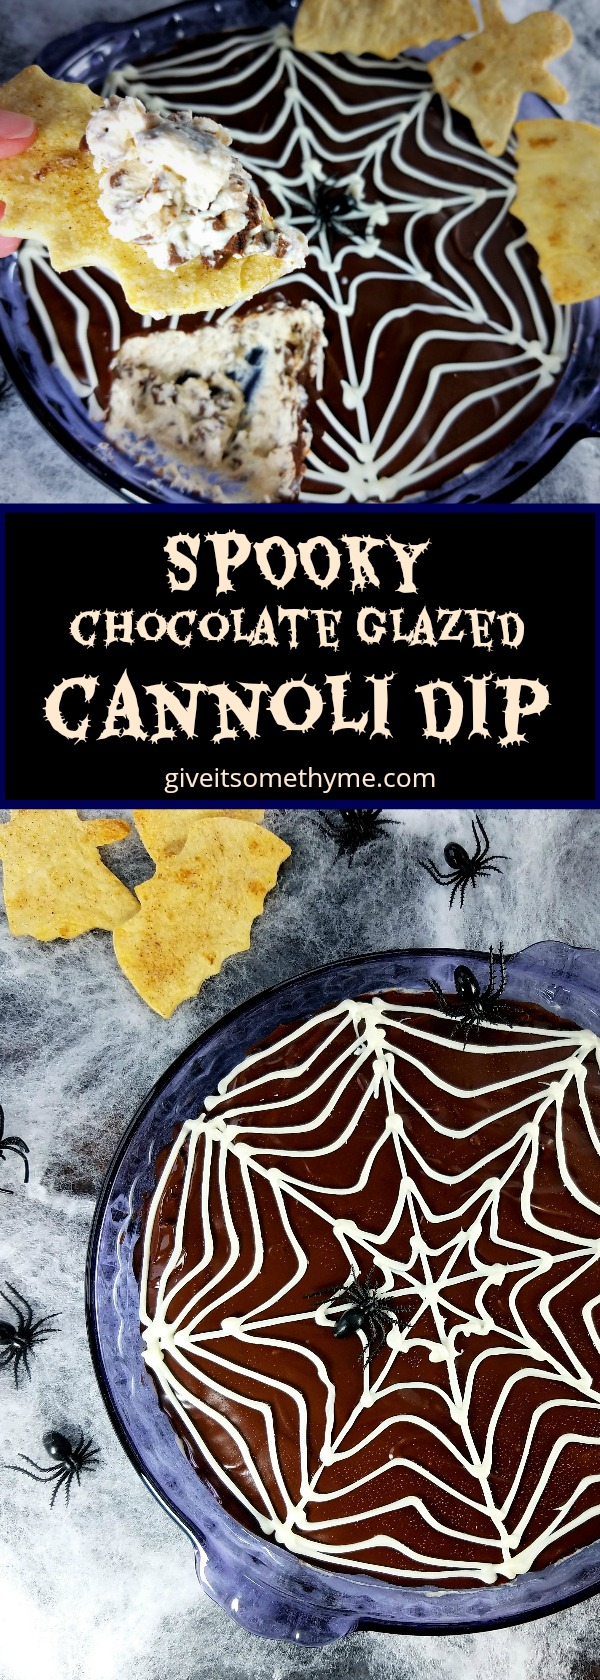 Spooky Chocolate Glazed Cannoli Dip - Give it Some Thyme